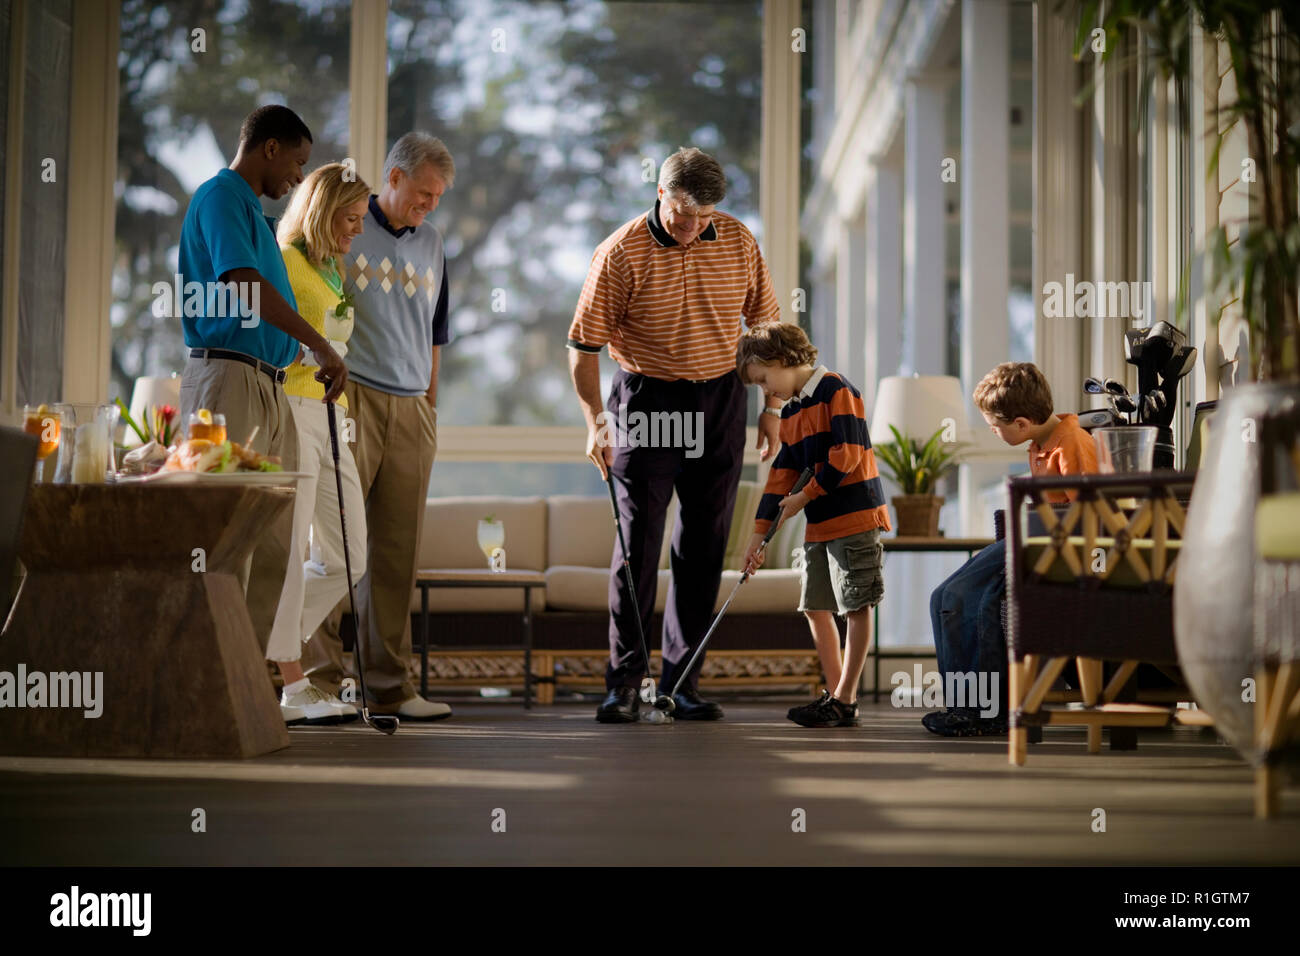 Young boy getting golf tips from his mid-adult father as his mother and two men watch. - Stock Image